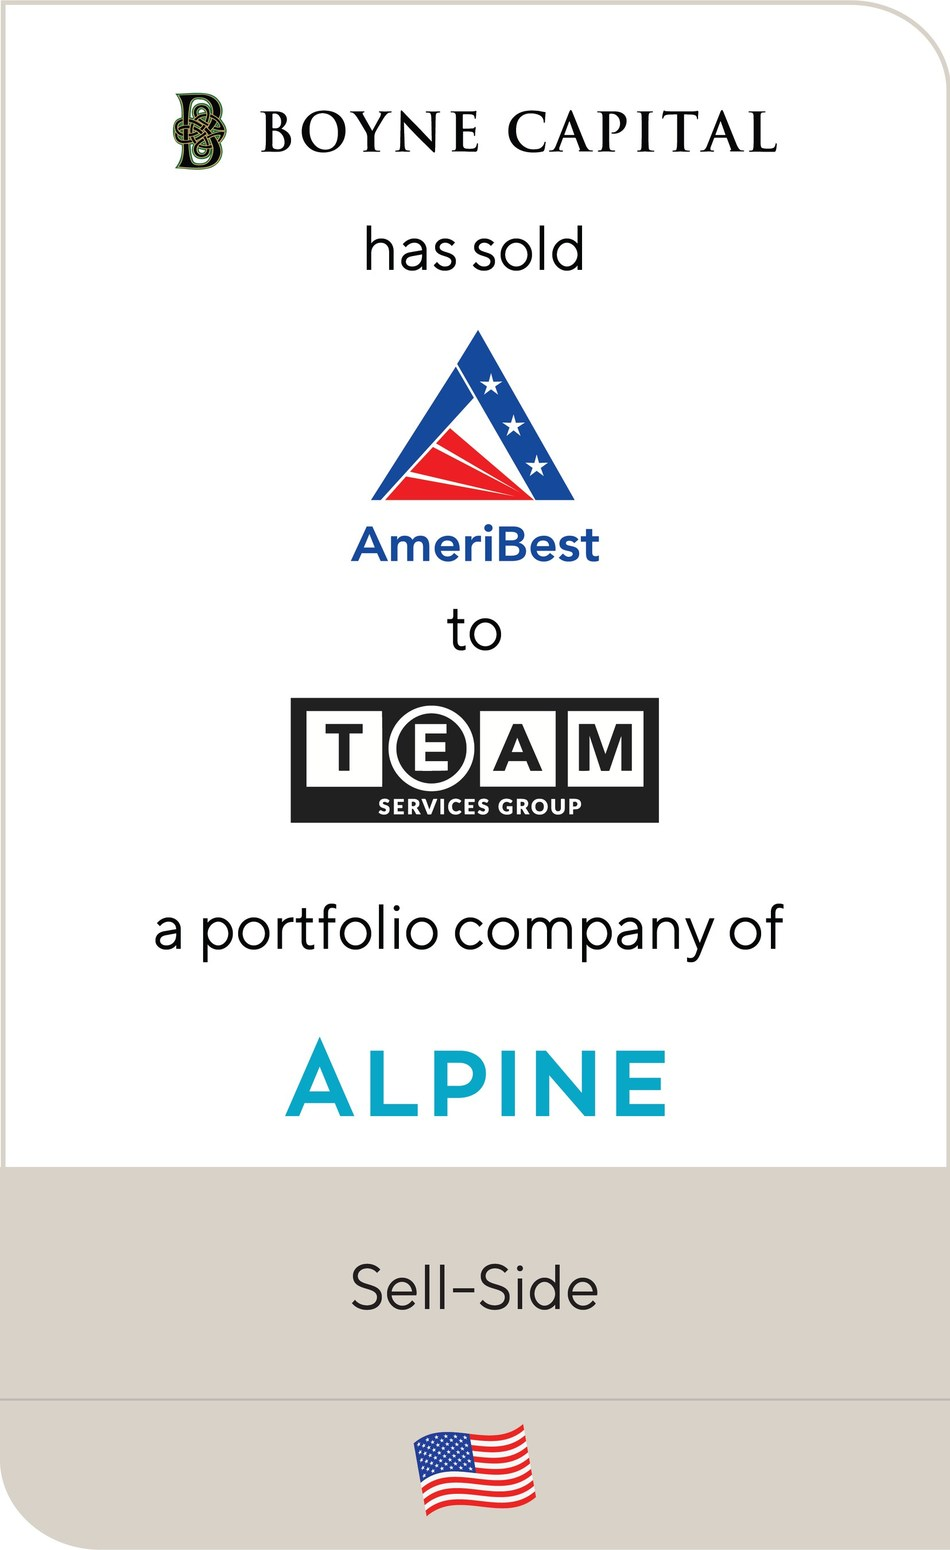 Lincoln International is pleased to announce that AmeriBest Home Care, a portfolio company of Boyne Capital, has been sold to TEAM Services Group, a portfolio company of Alpine Investors